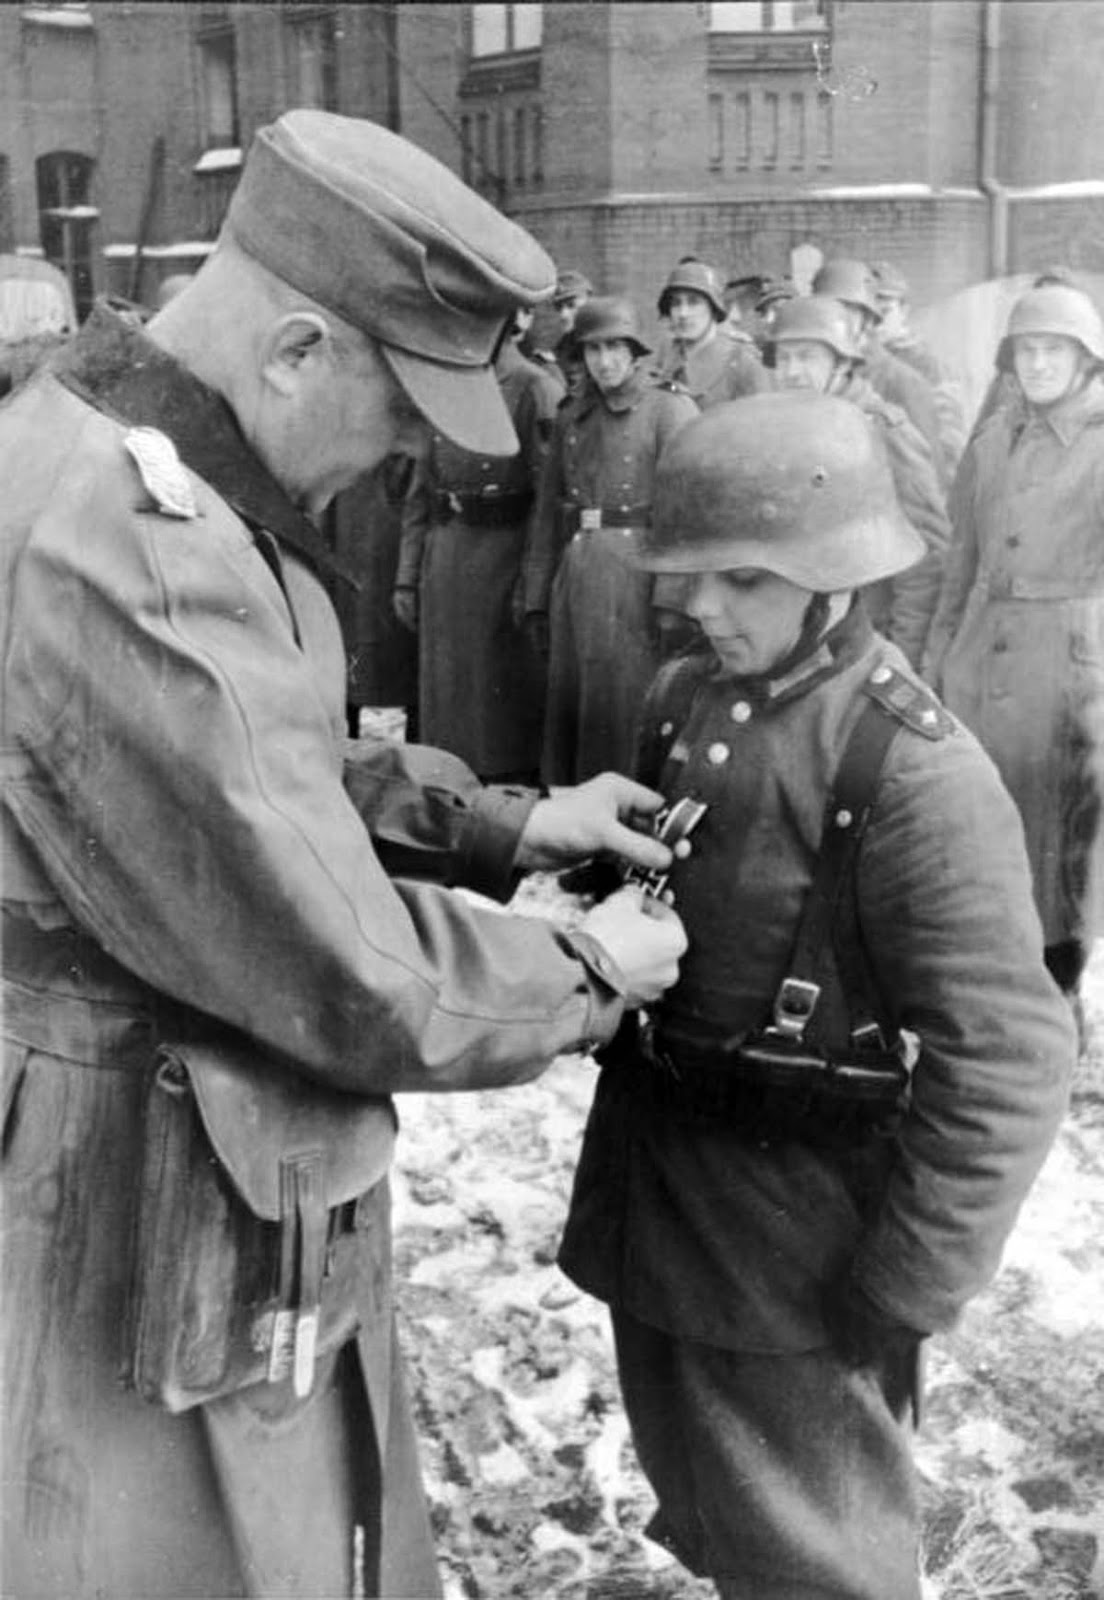 Artur Axmann, leader (Reichsjugendführer) of the Hitler Youth (Hitlerjugend), redecorating Willi Hübner.